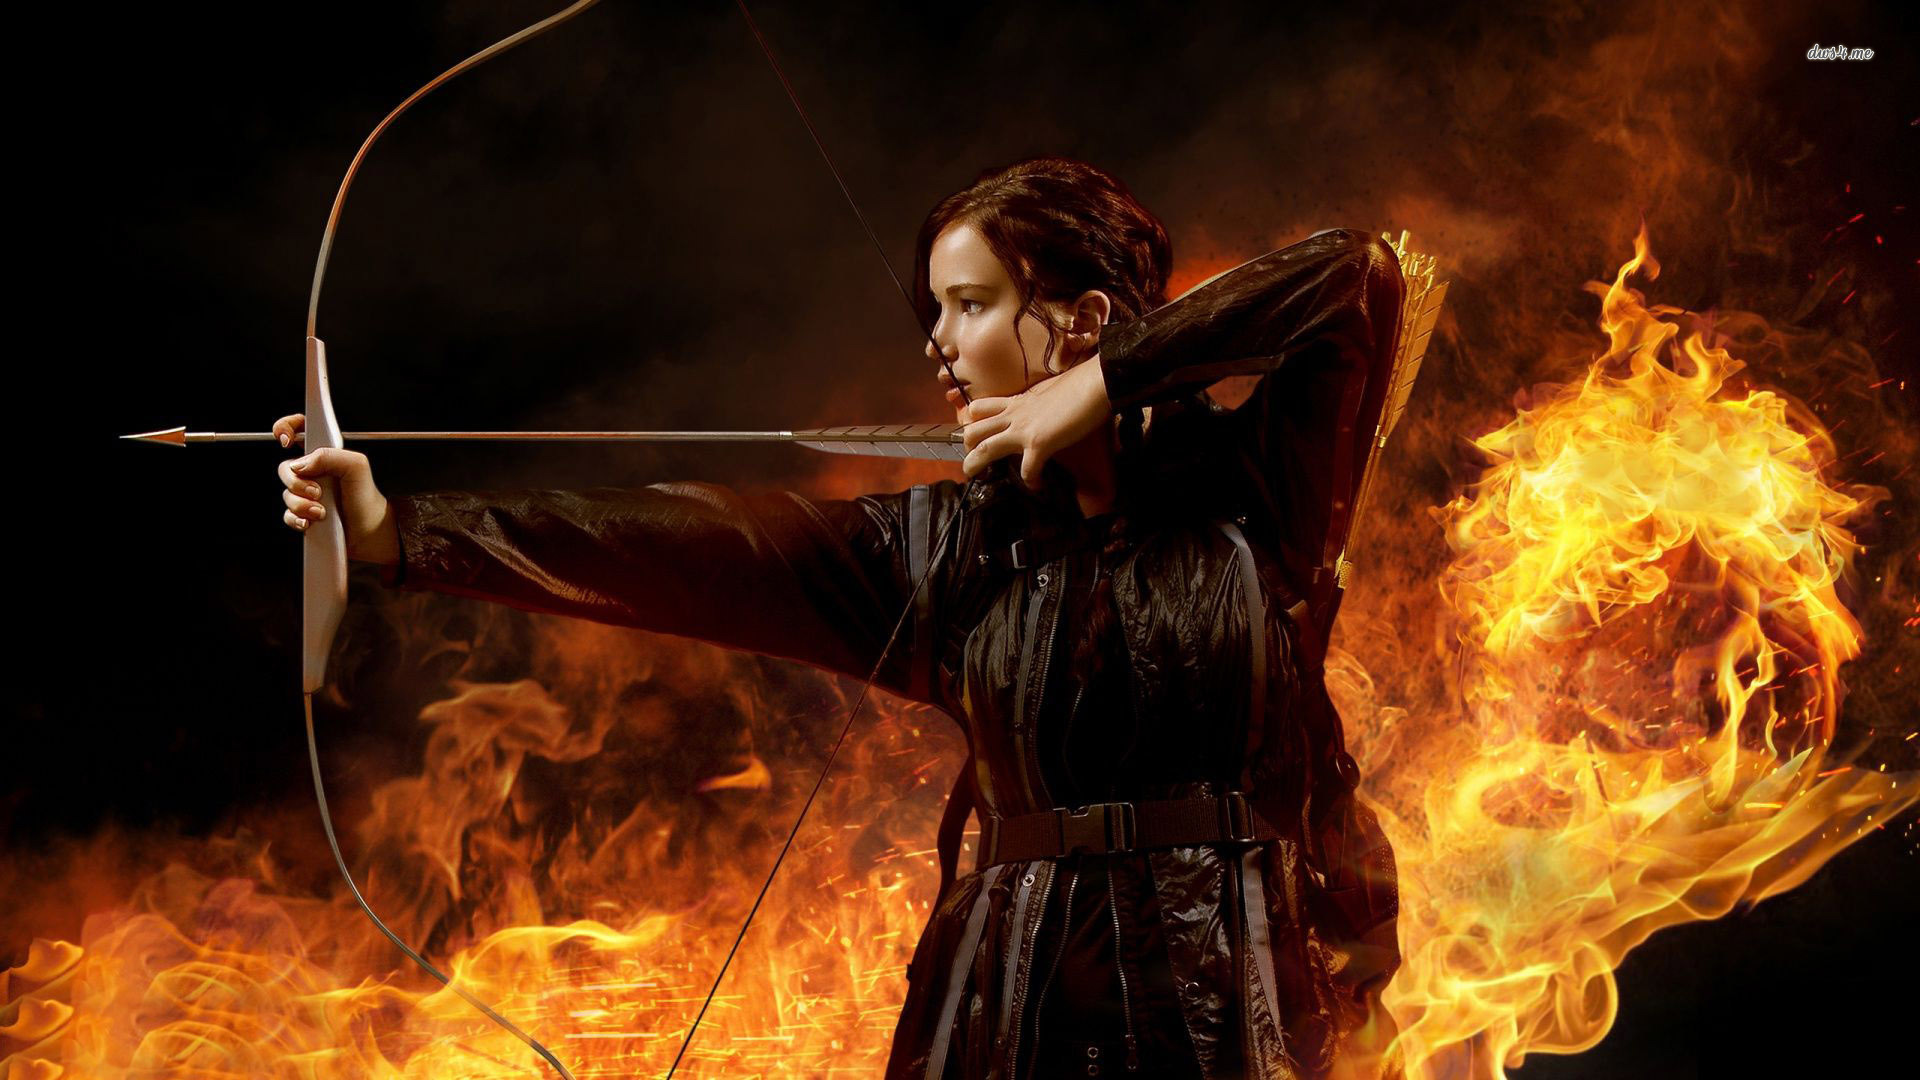 Hunger Games Wallpaper HD PIC MCH074356